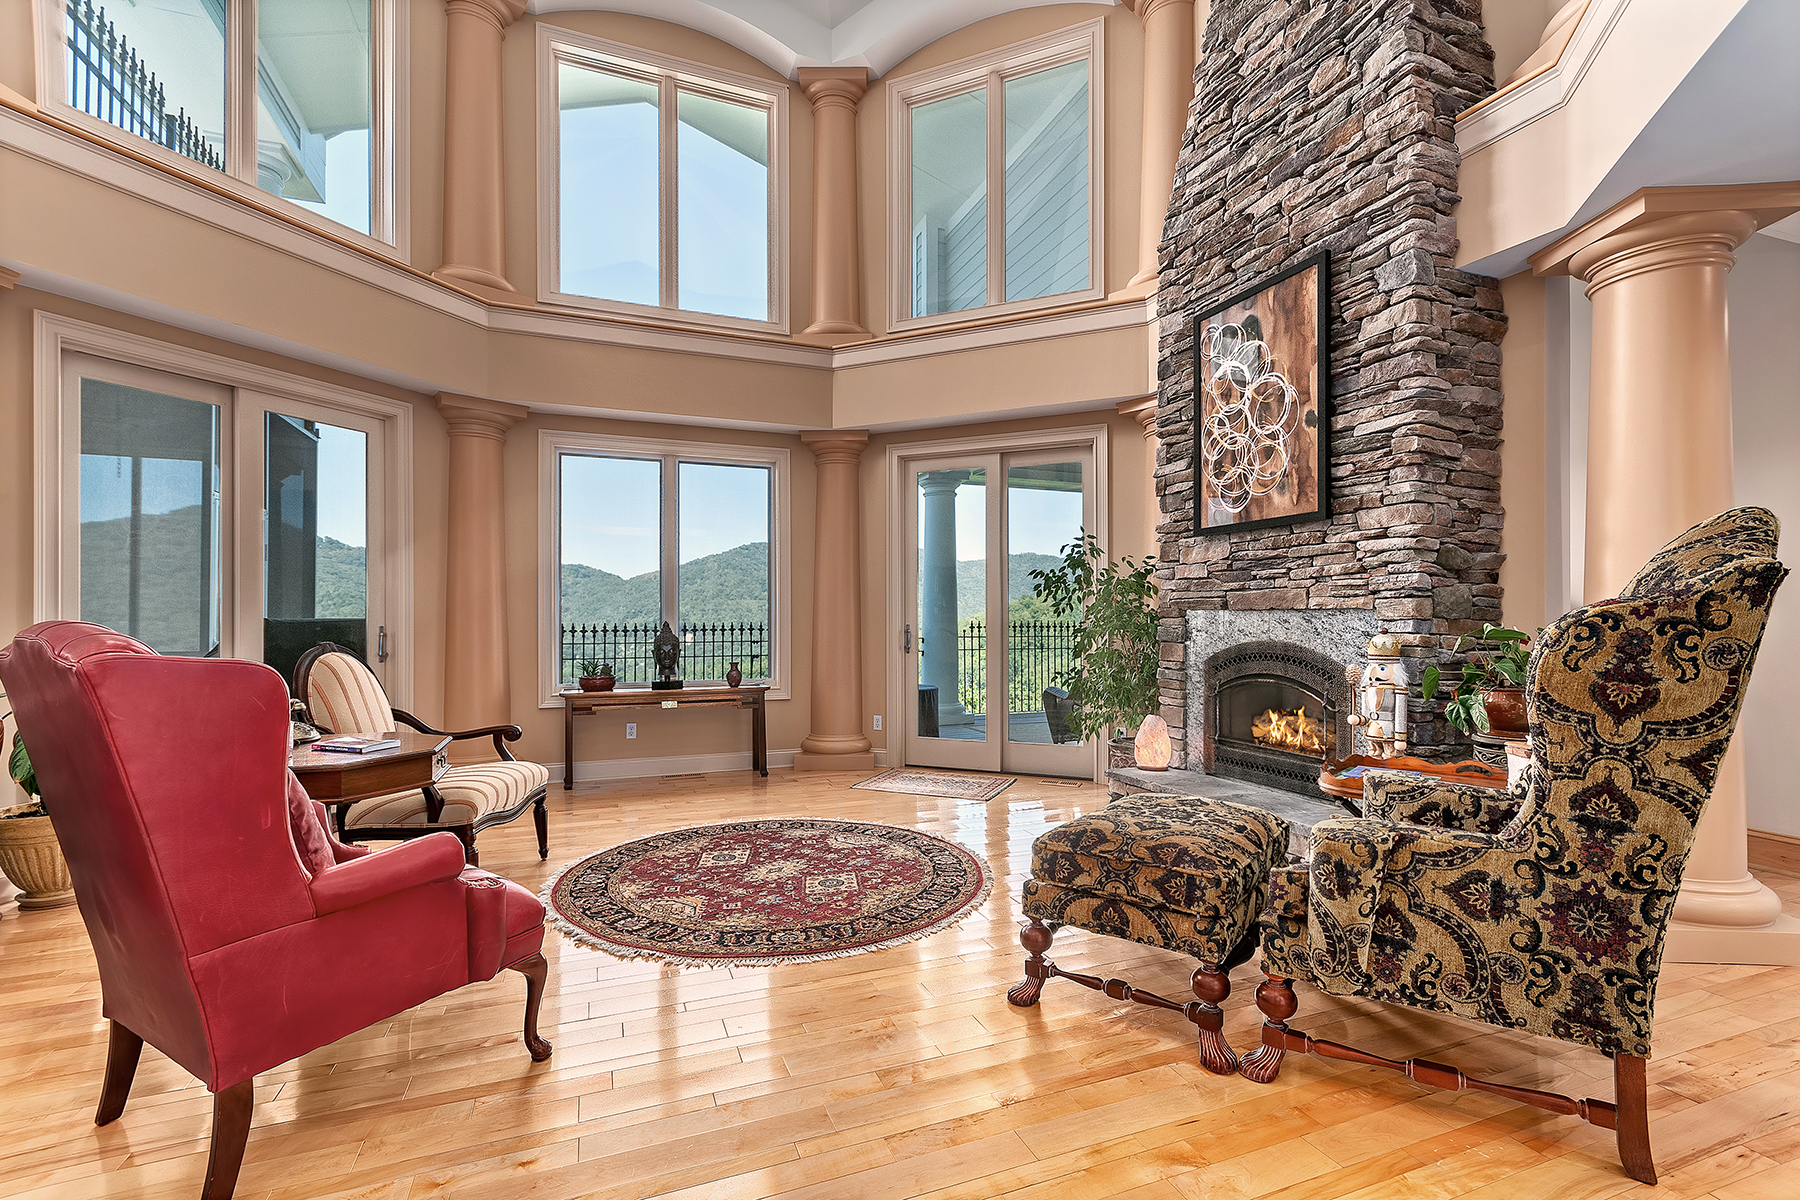 Single Family Home for Sale at YEAR ROUND MOUNTAIN VIEWS 316 Mountain Laurel, Asheville, North Carolina 28805 United States